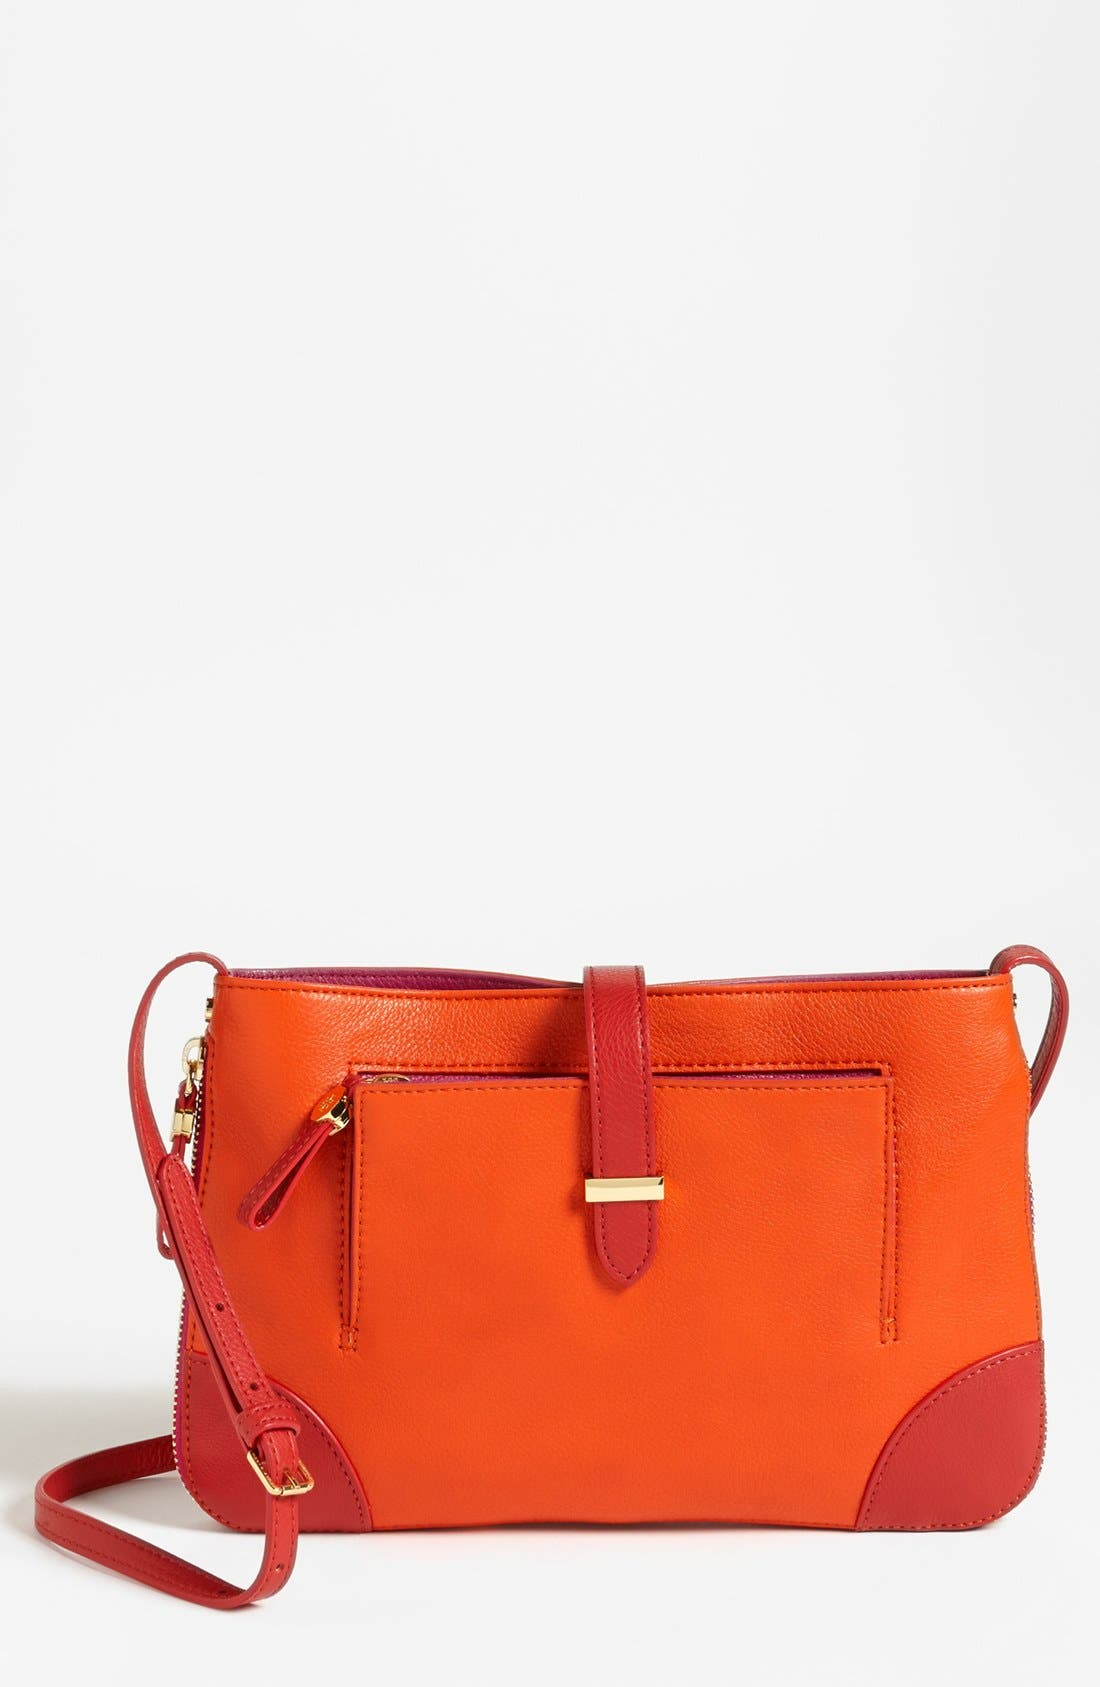 Alternate Image 1 Selected - Tory Burch 'Clay' Leather Crossbody Bag